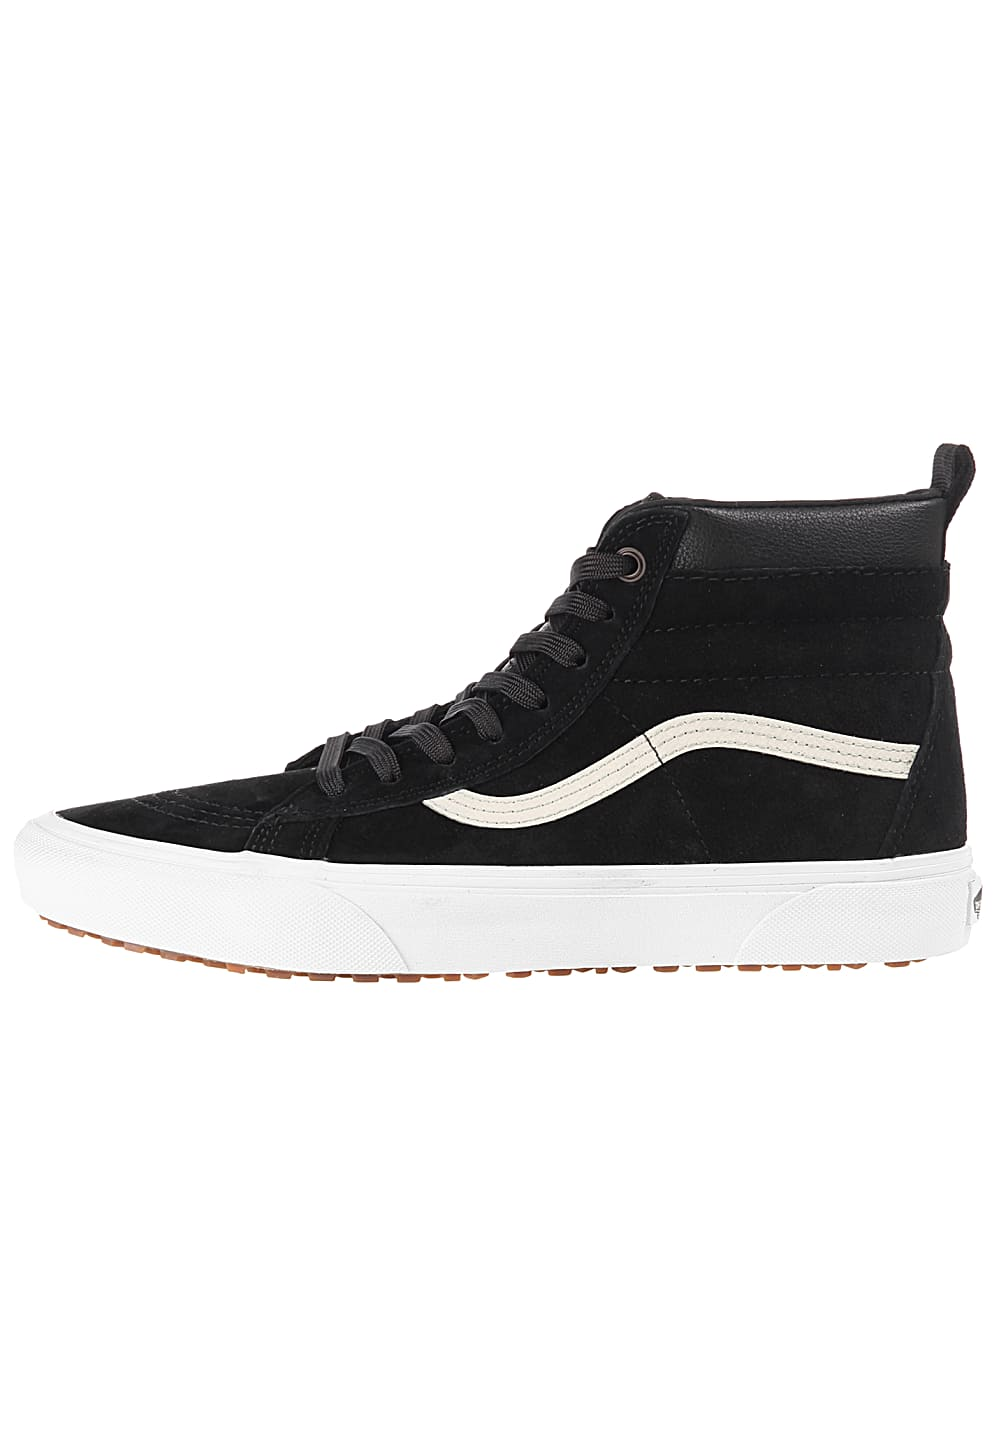 Neue Trendy Vans Sk8 Hi Mte Schwarz High Top Sneakers Herren